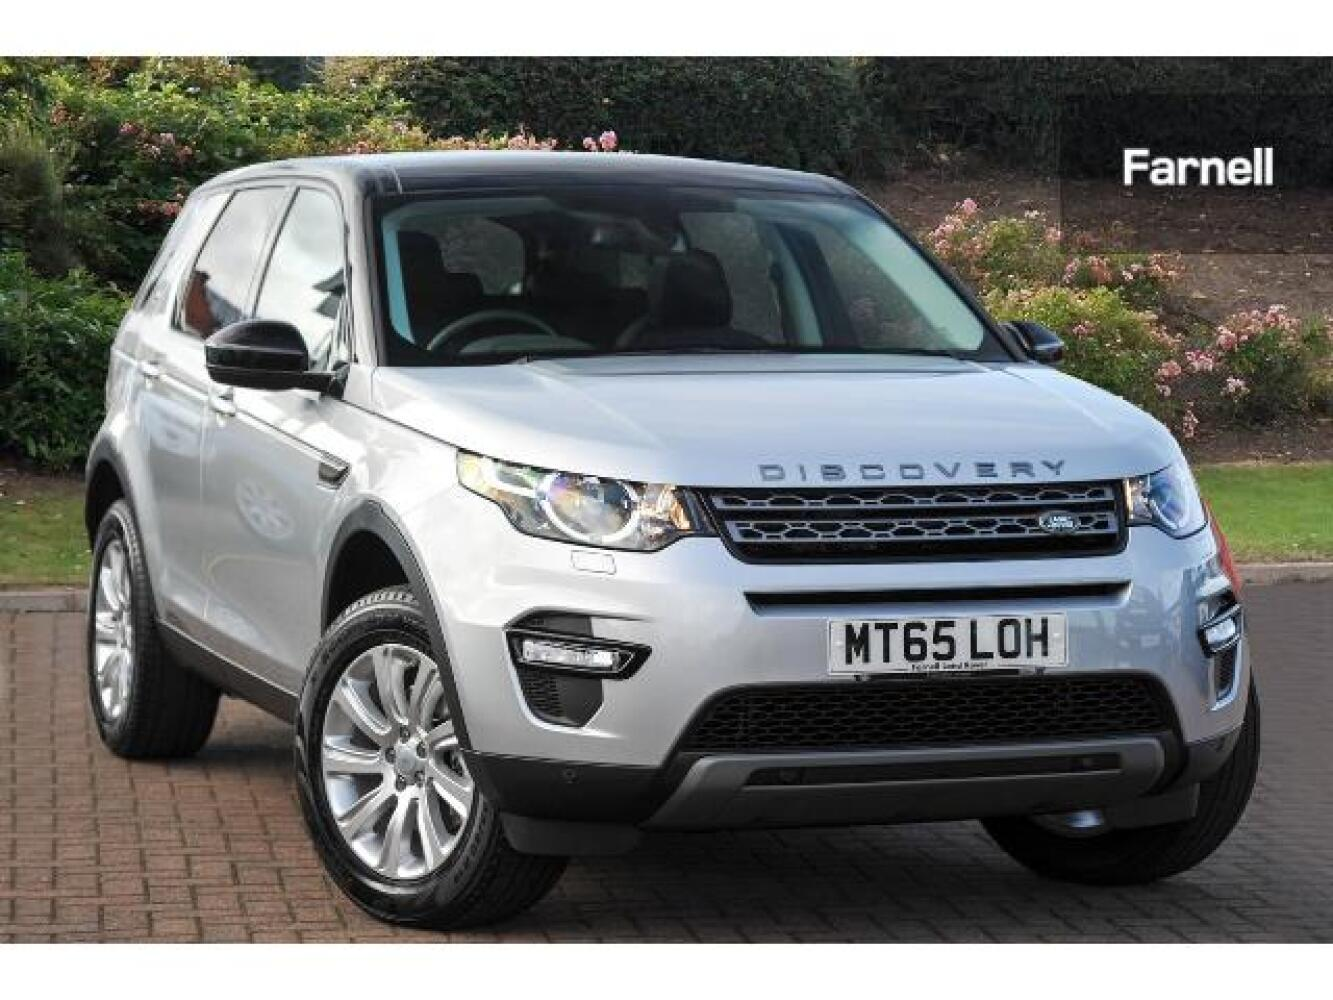 used land rover discovery sport 2 0 td4 180 se tech 5dr auto diesel station wagon for sale. Black Bedroom Furniture Sets. Home Design Ideas